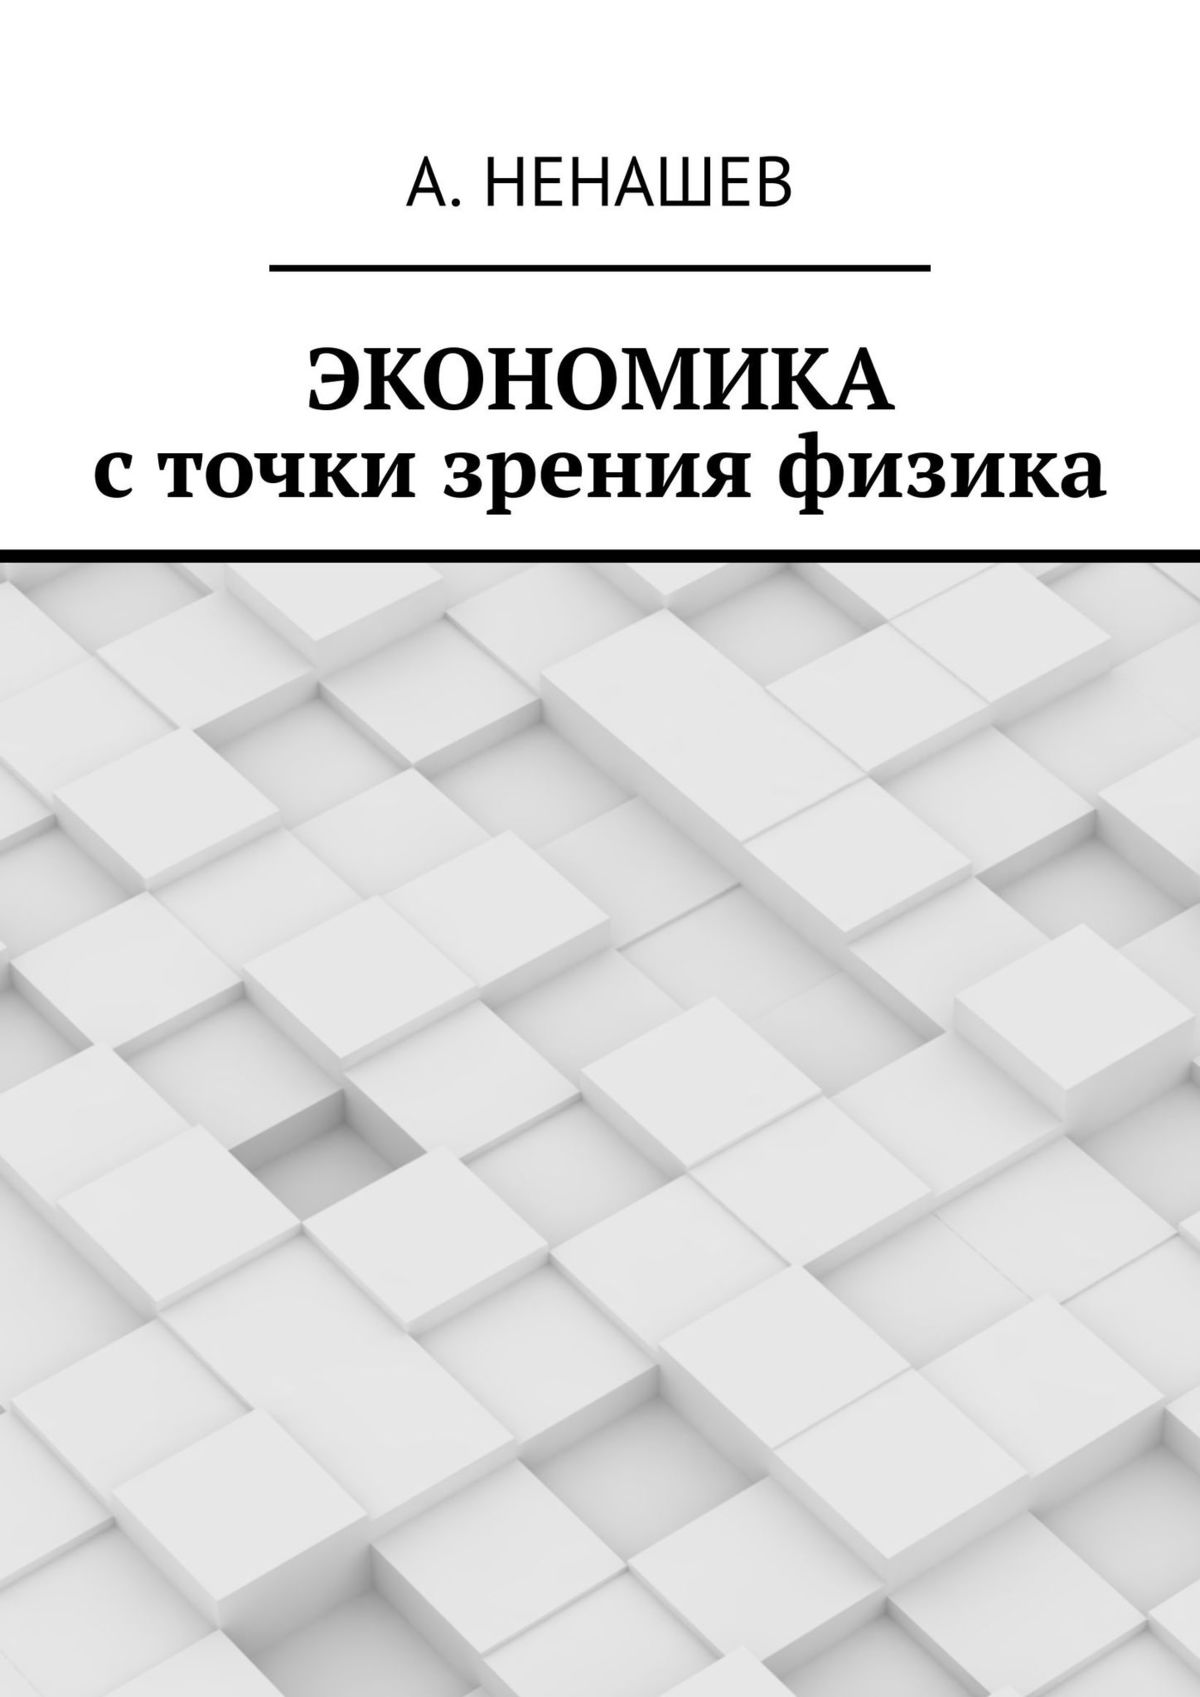 А. Ненашев Экономика с точки зрения физика boardsource the nonprofit board answer book a practical guide for board members and chief executives